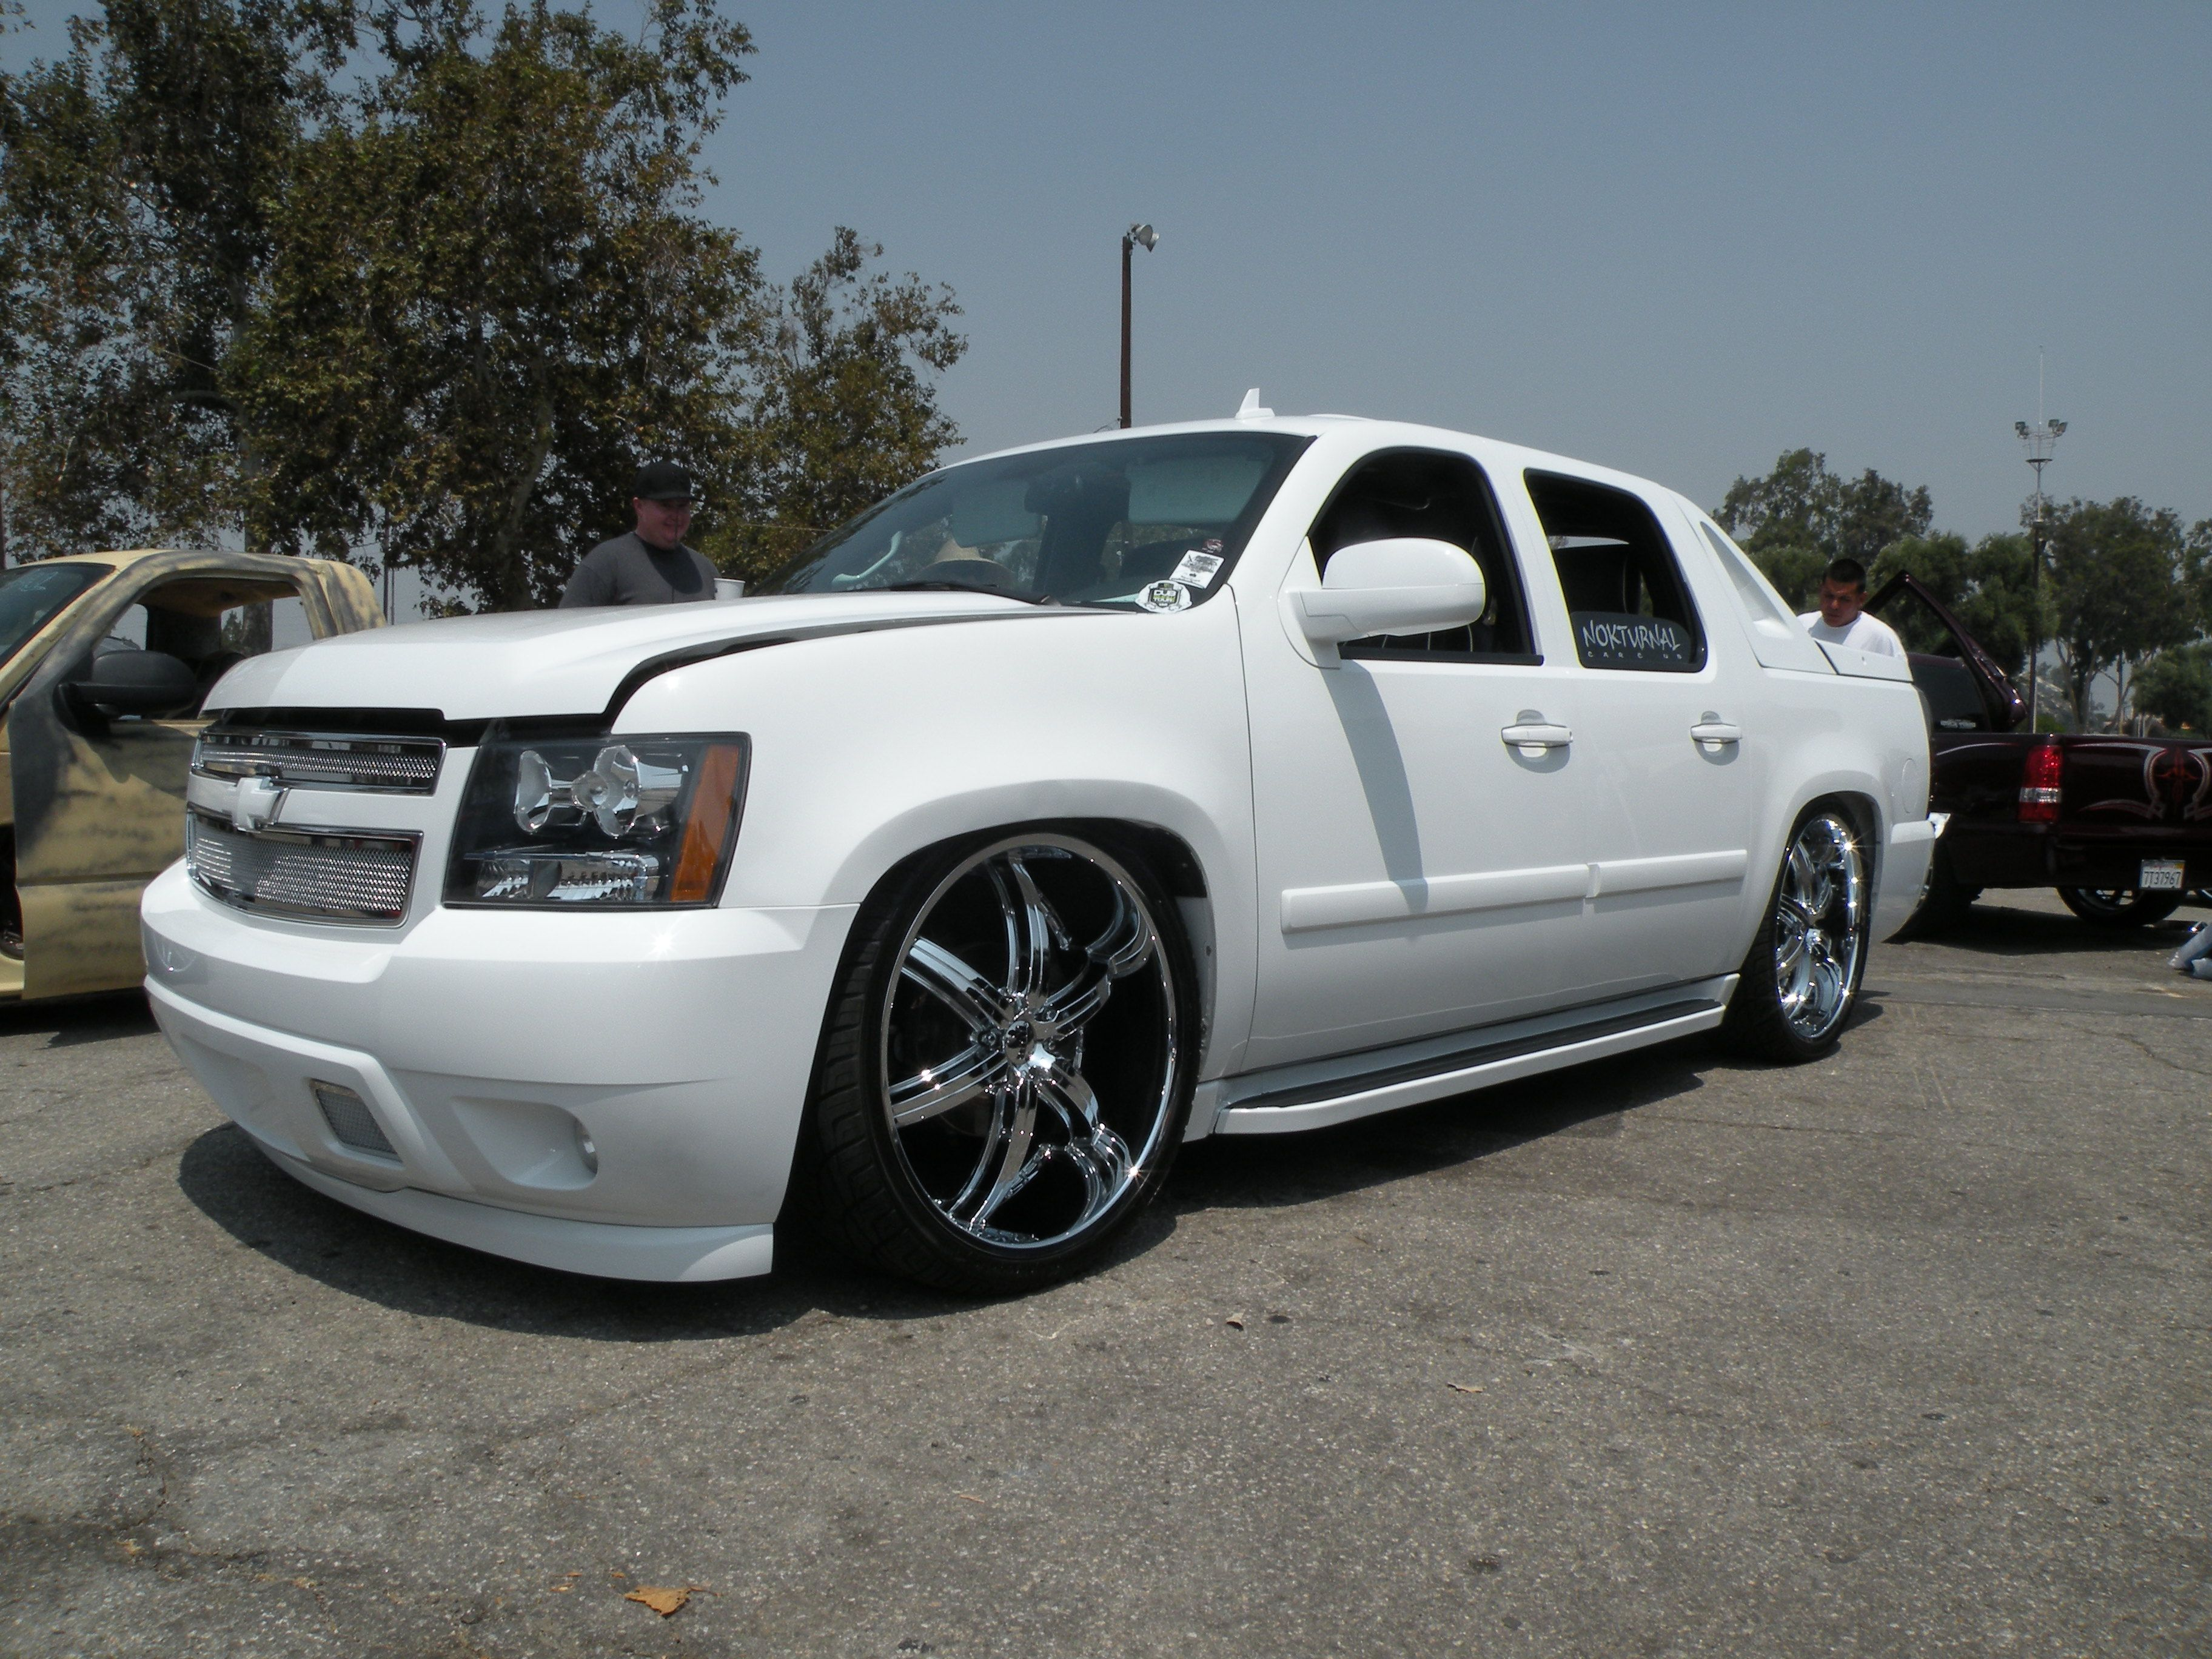 Best 25 Chevy avalanche ideas on Pinterest  2007 suburban 2007